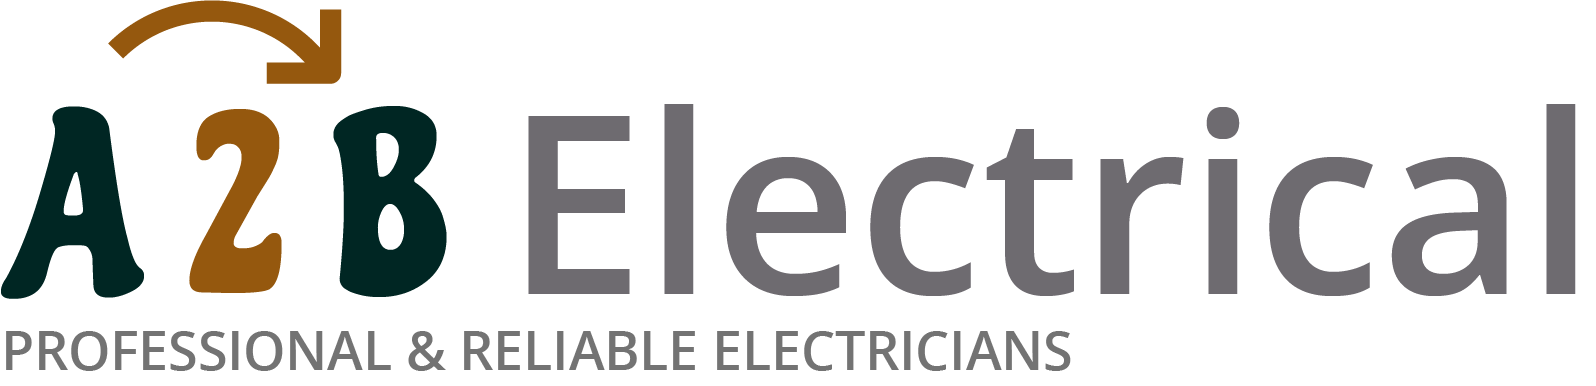 If you have electrical wiring problems in Catford, we can provide an electrician to have a look for you.